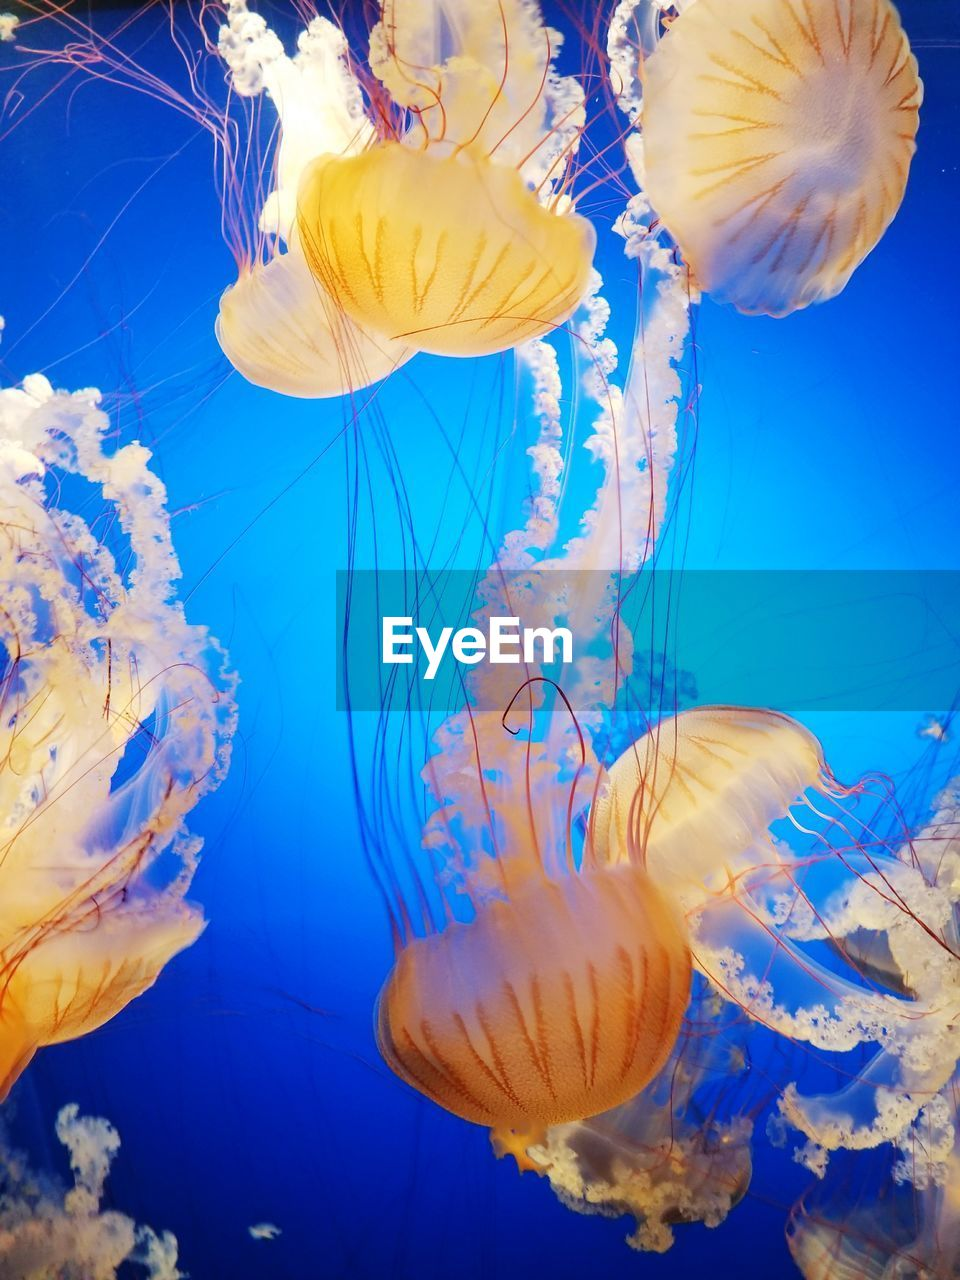 jellyfish, underwater, water, swimming, sea life, smooth, floating in water, close-up, no people, group of animals, studio shot, beauty in nature, animal themes